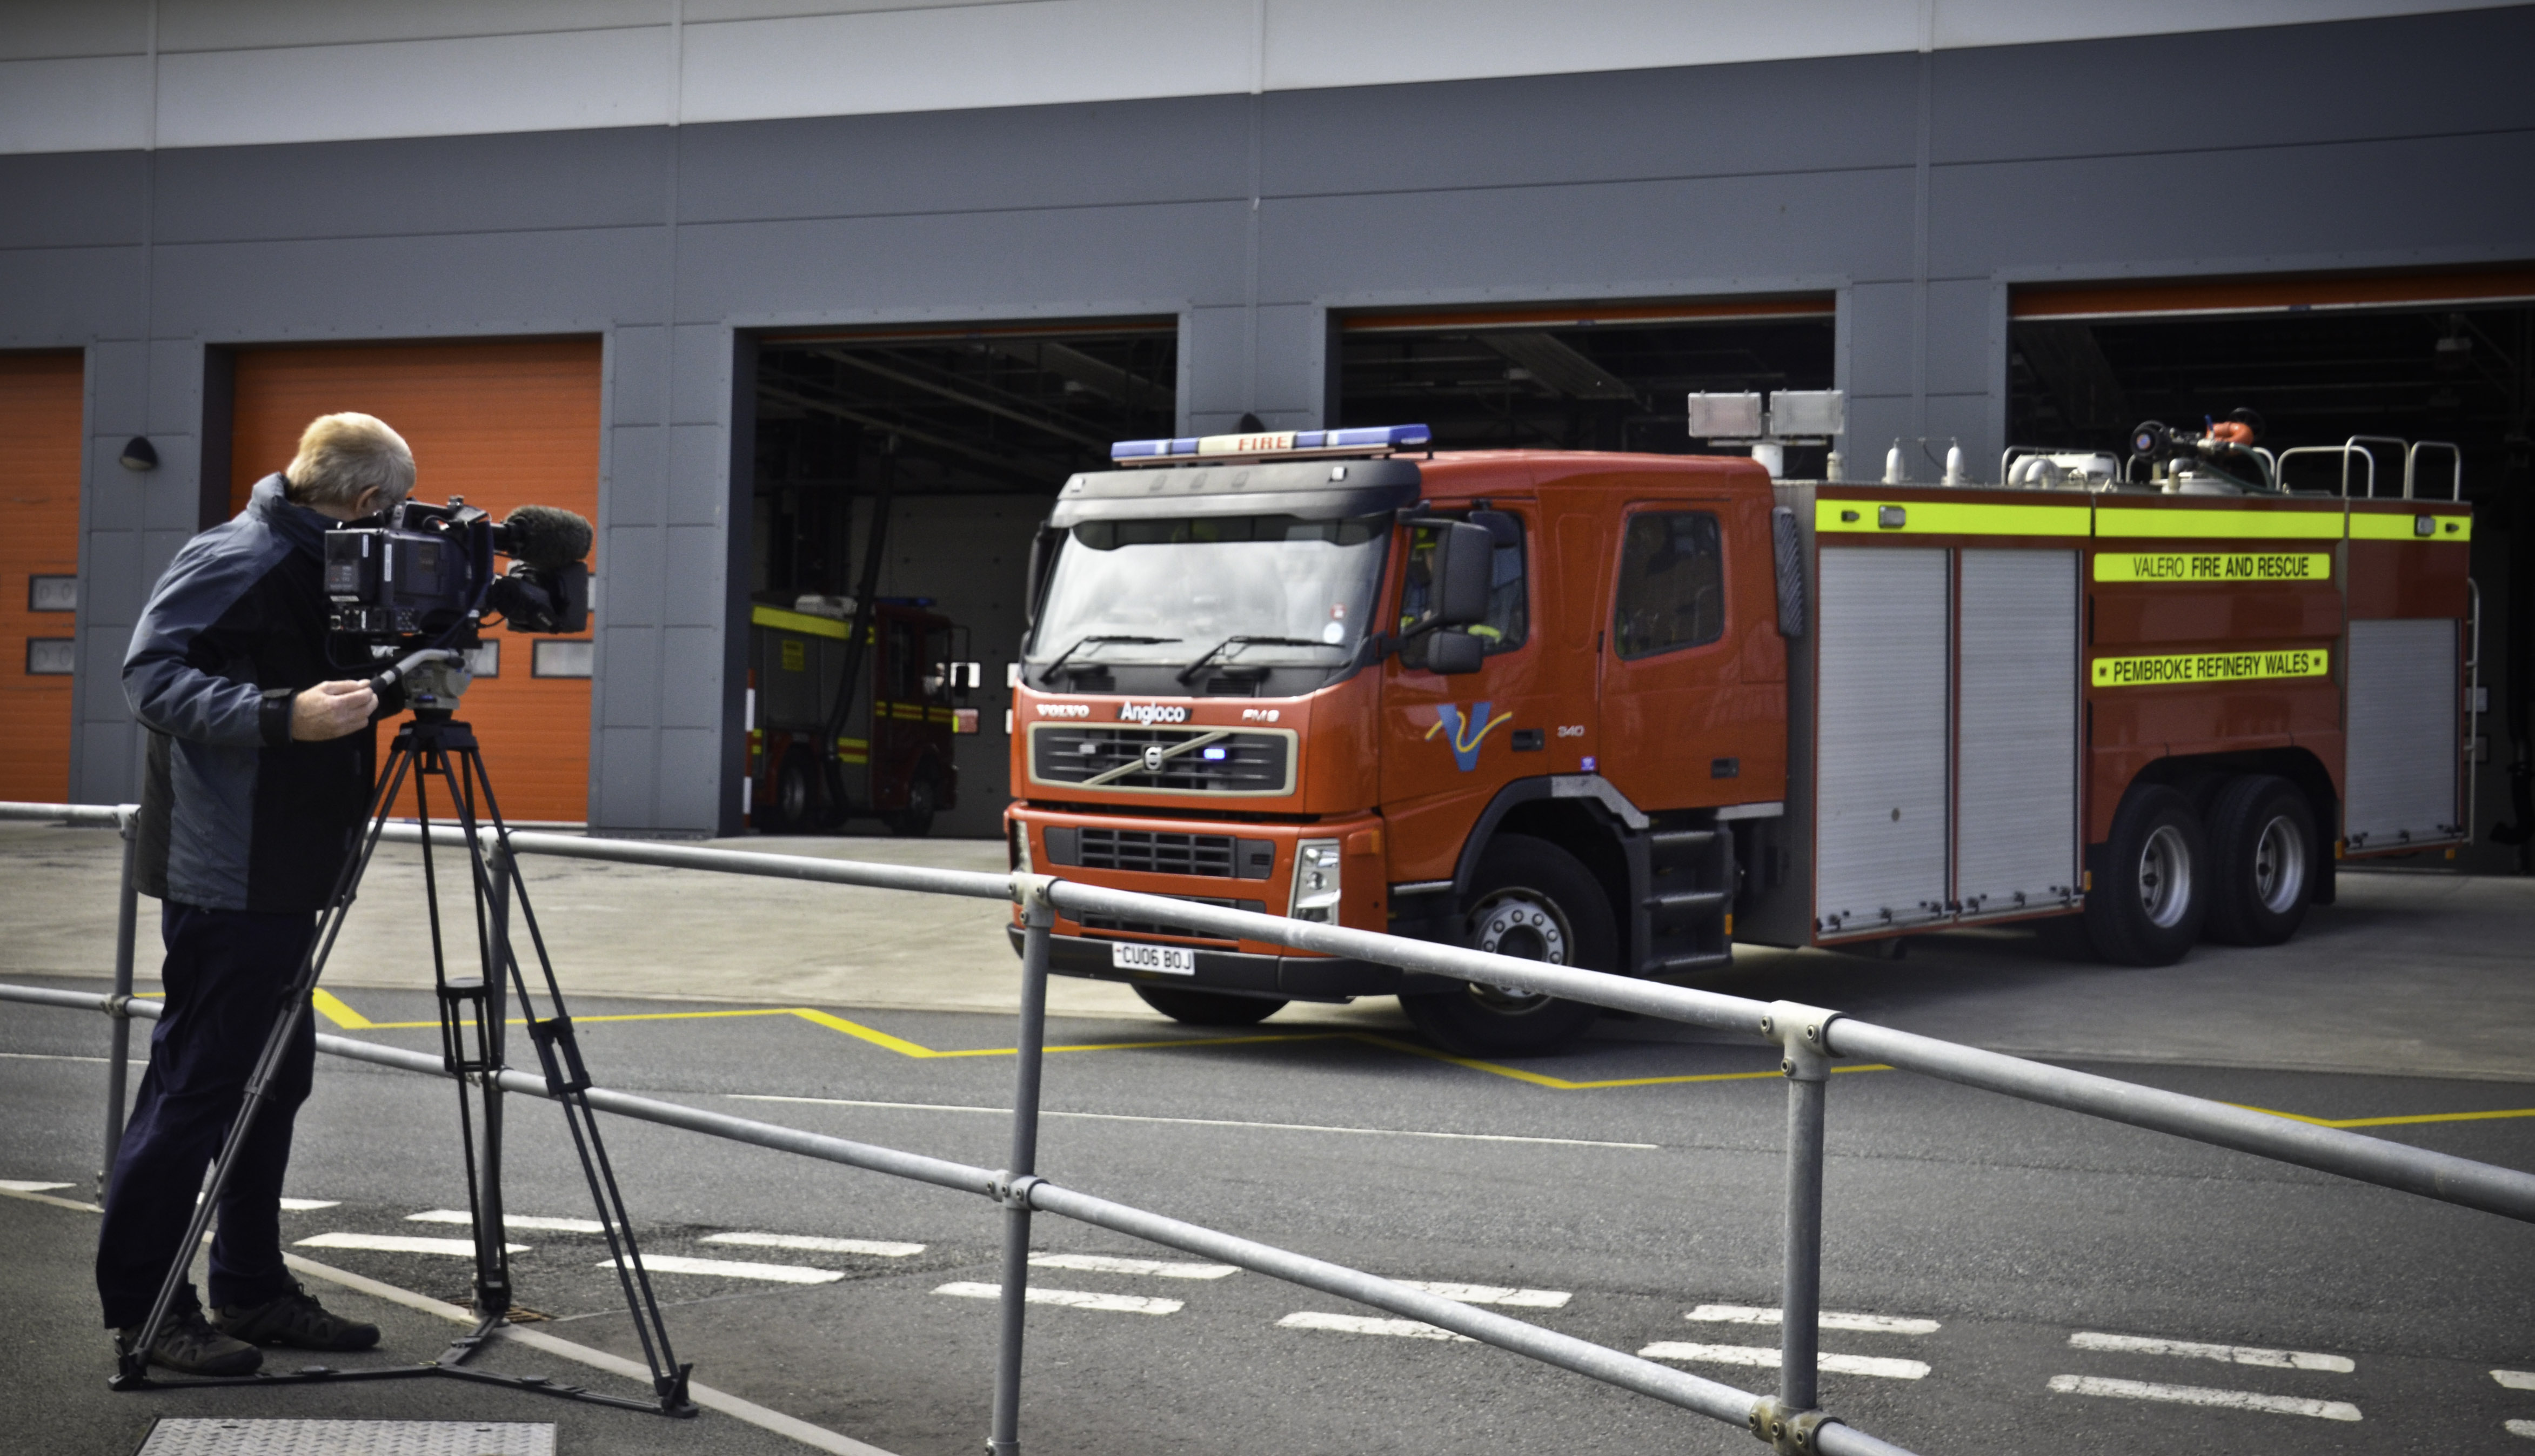 Fire and emergency filming